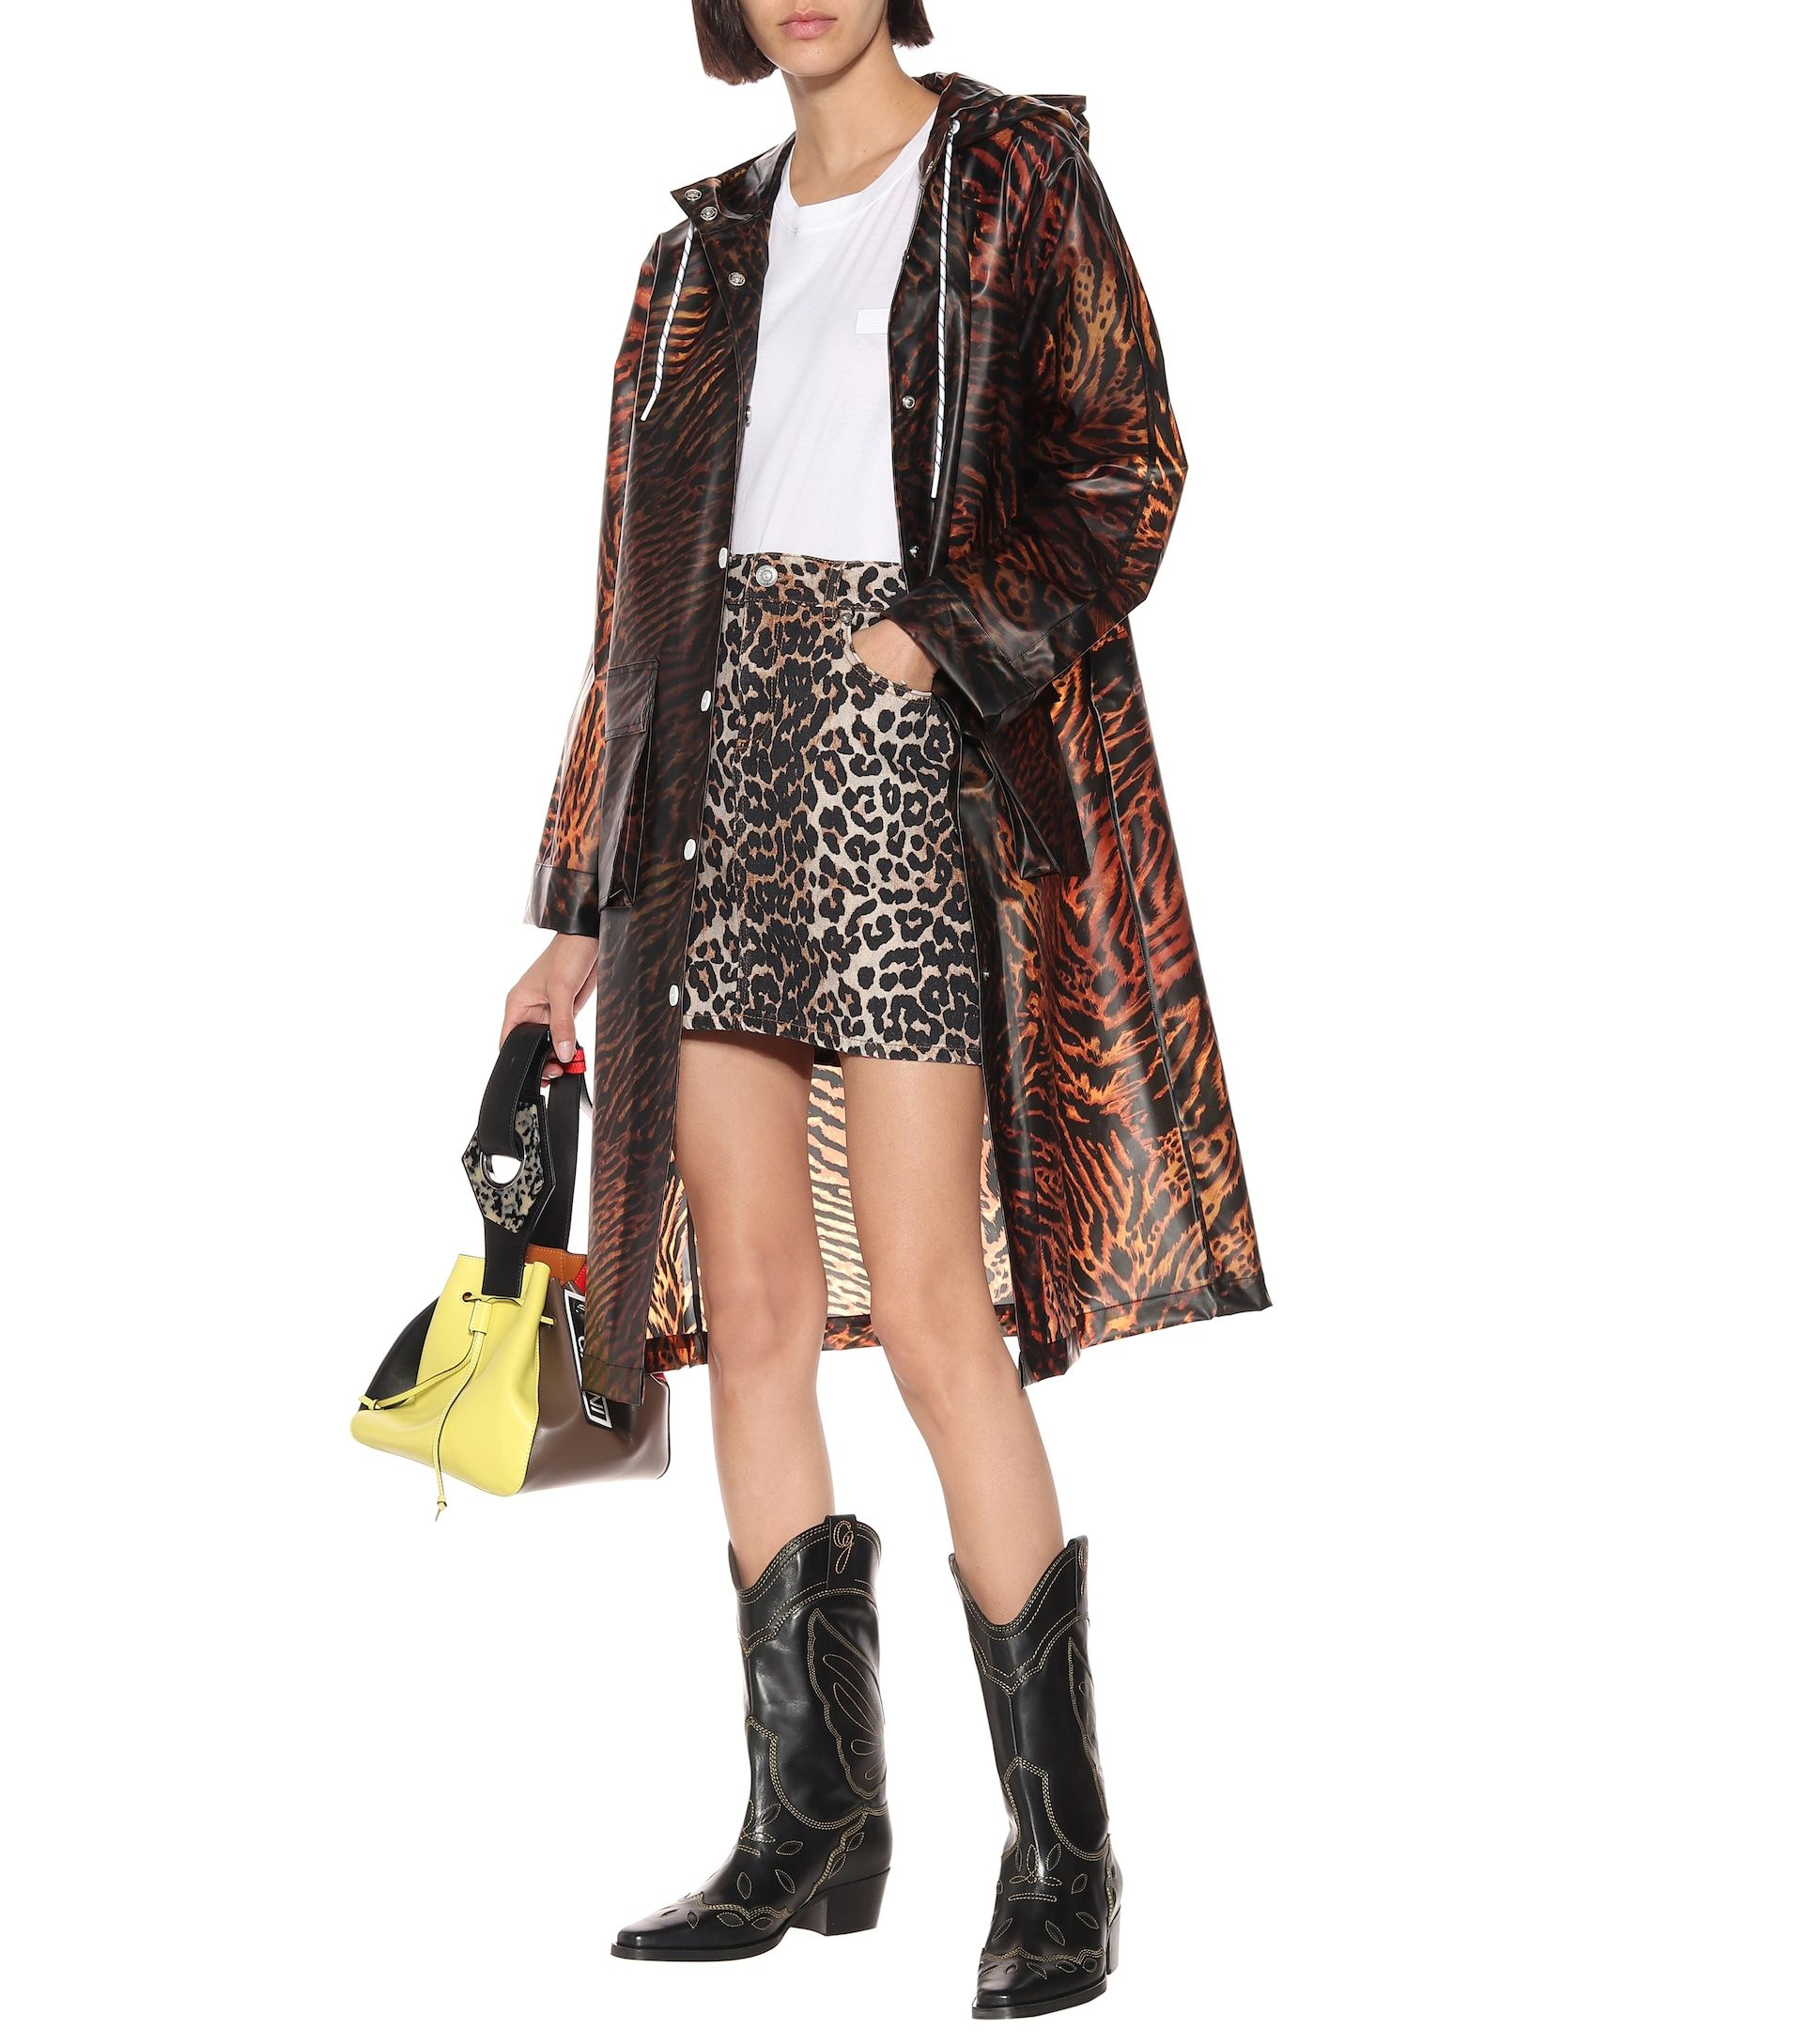 ganni-tiger-print-raincoat-outfit-fall-2019